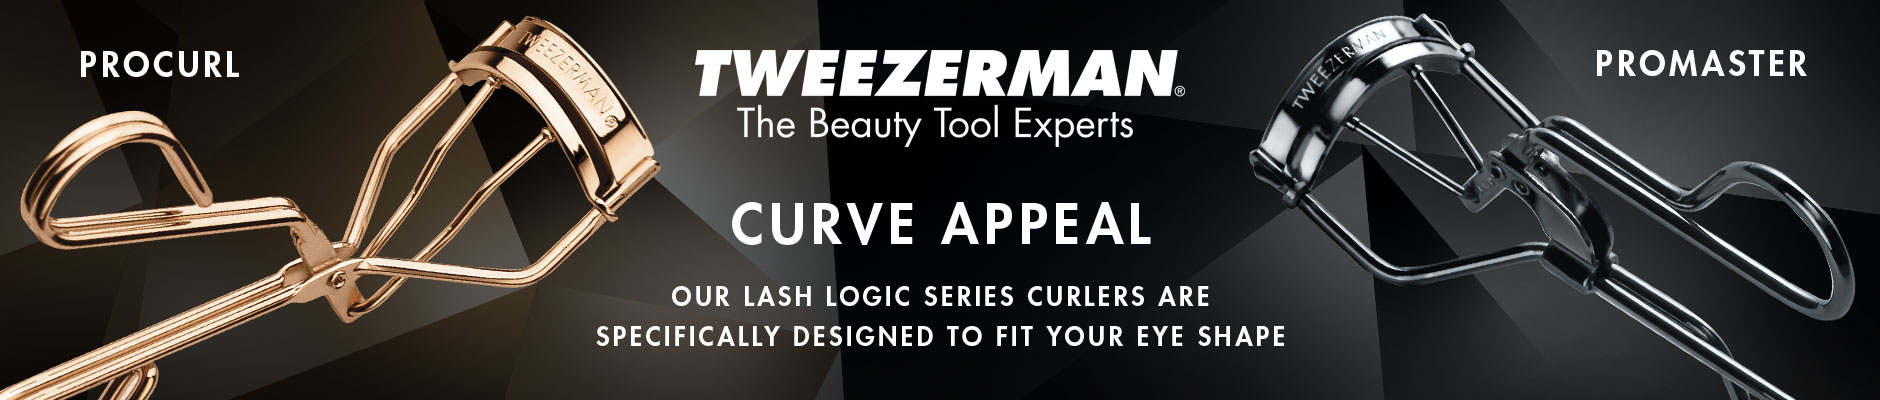 Tweezerman: The Beauty Tool Experts - Curve Appeal. Our lash logic series curlers are specifically designed to fit your eye shape